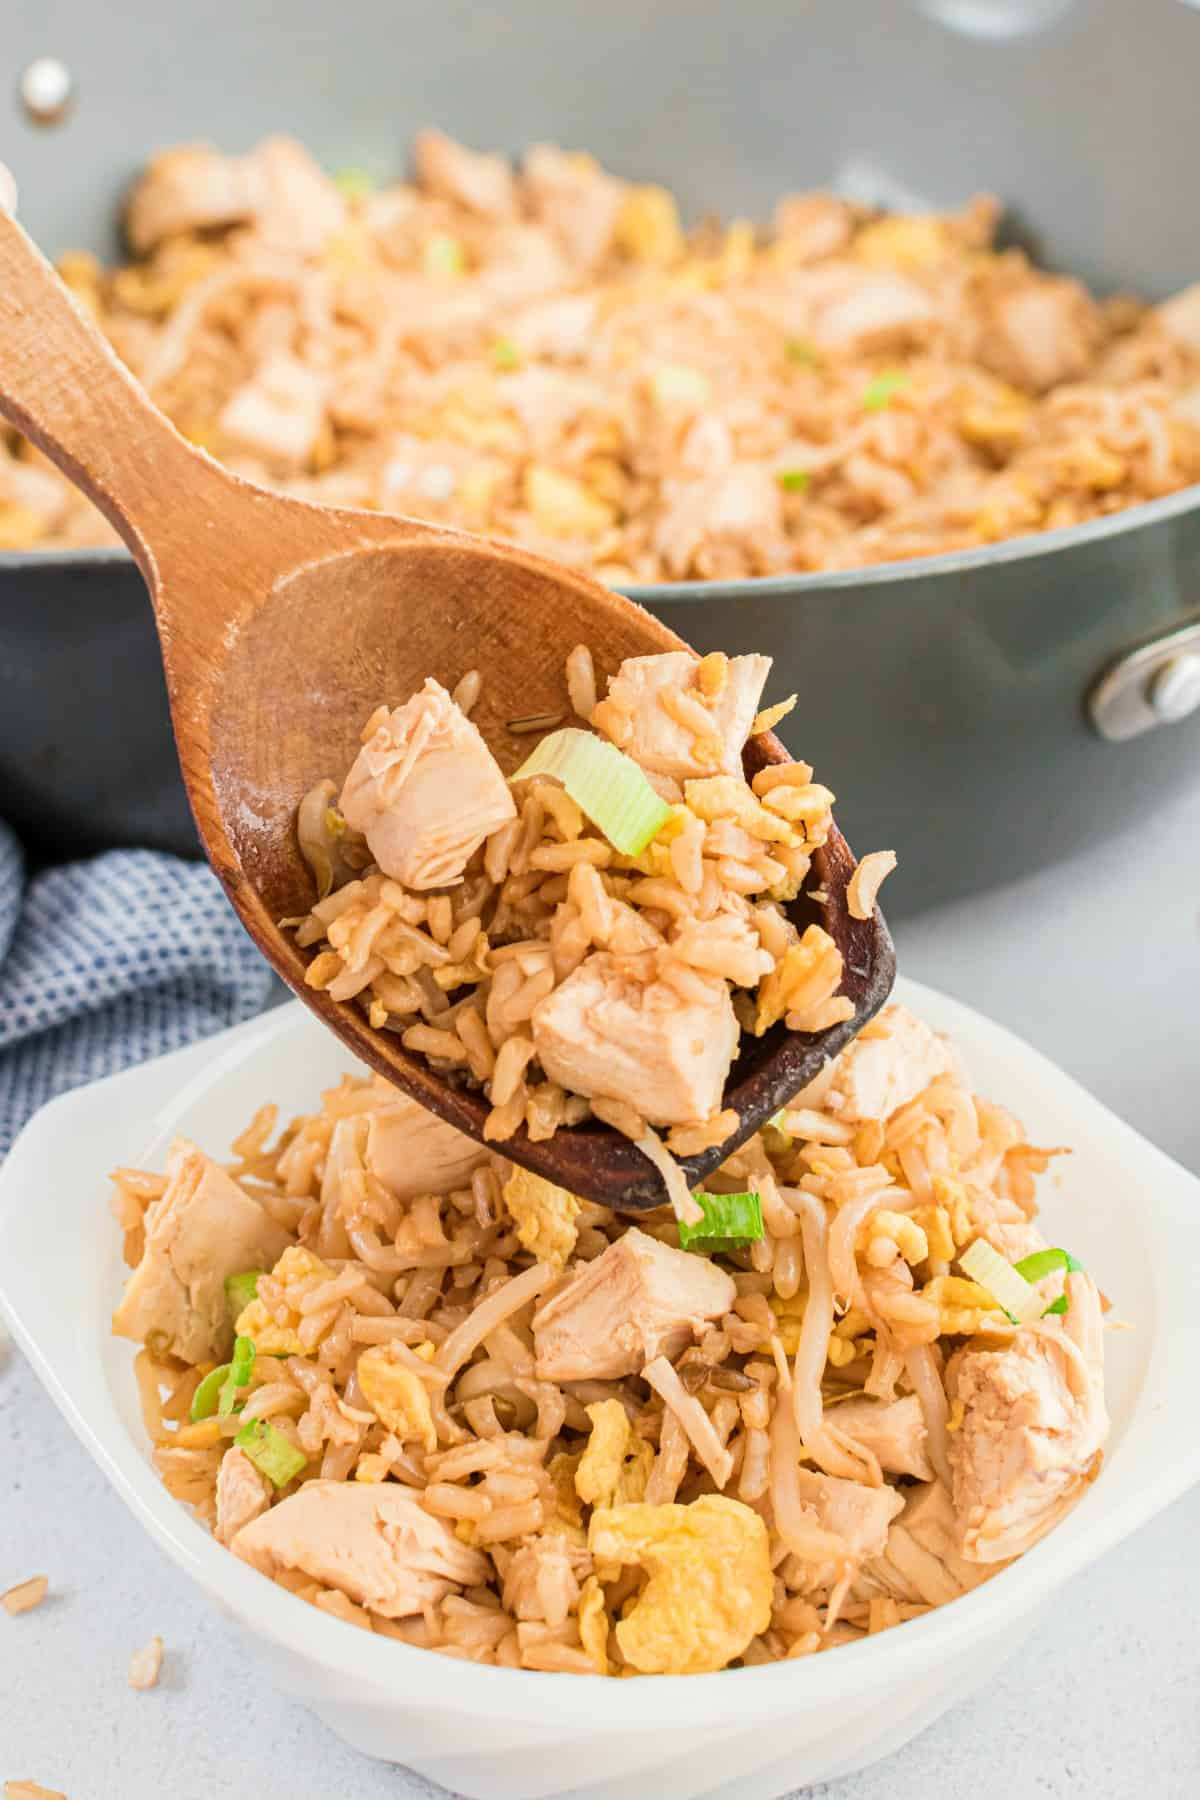 Chicken fried rice being spooned into a white bowl with a wooden spoon.